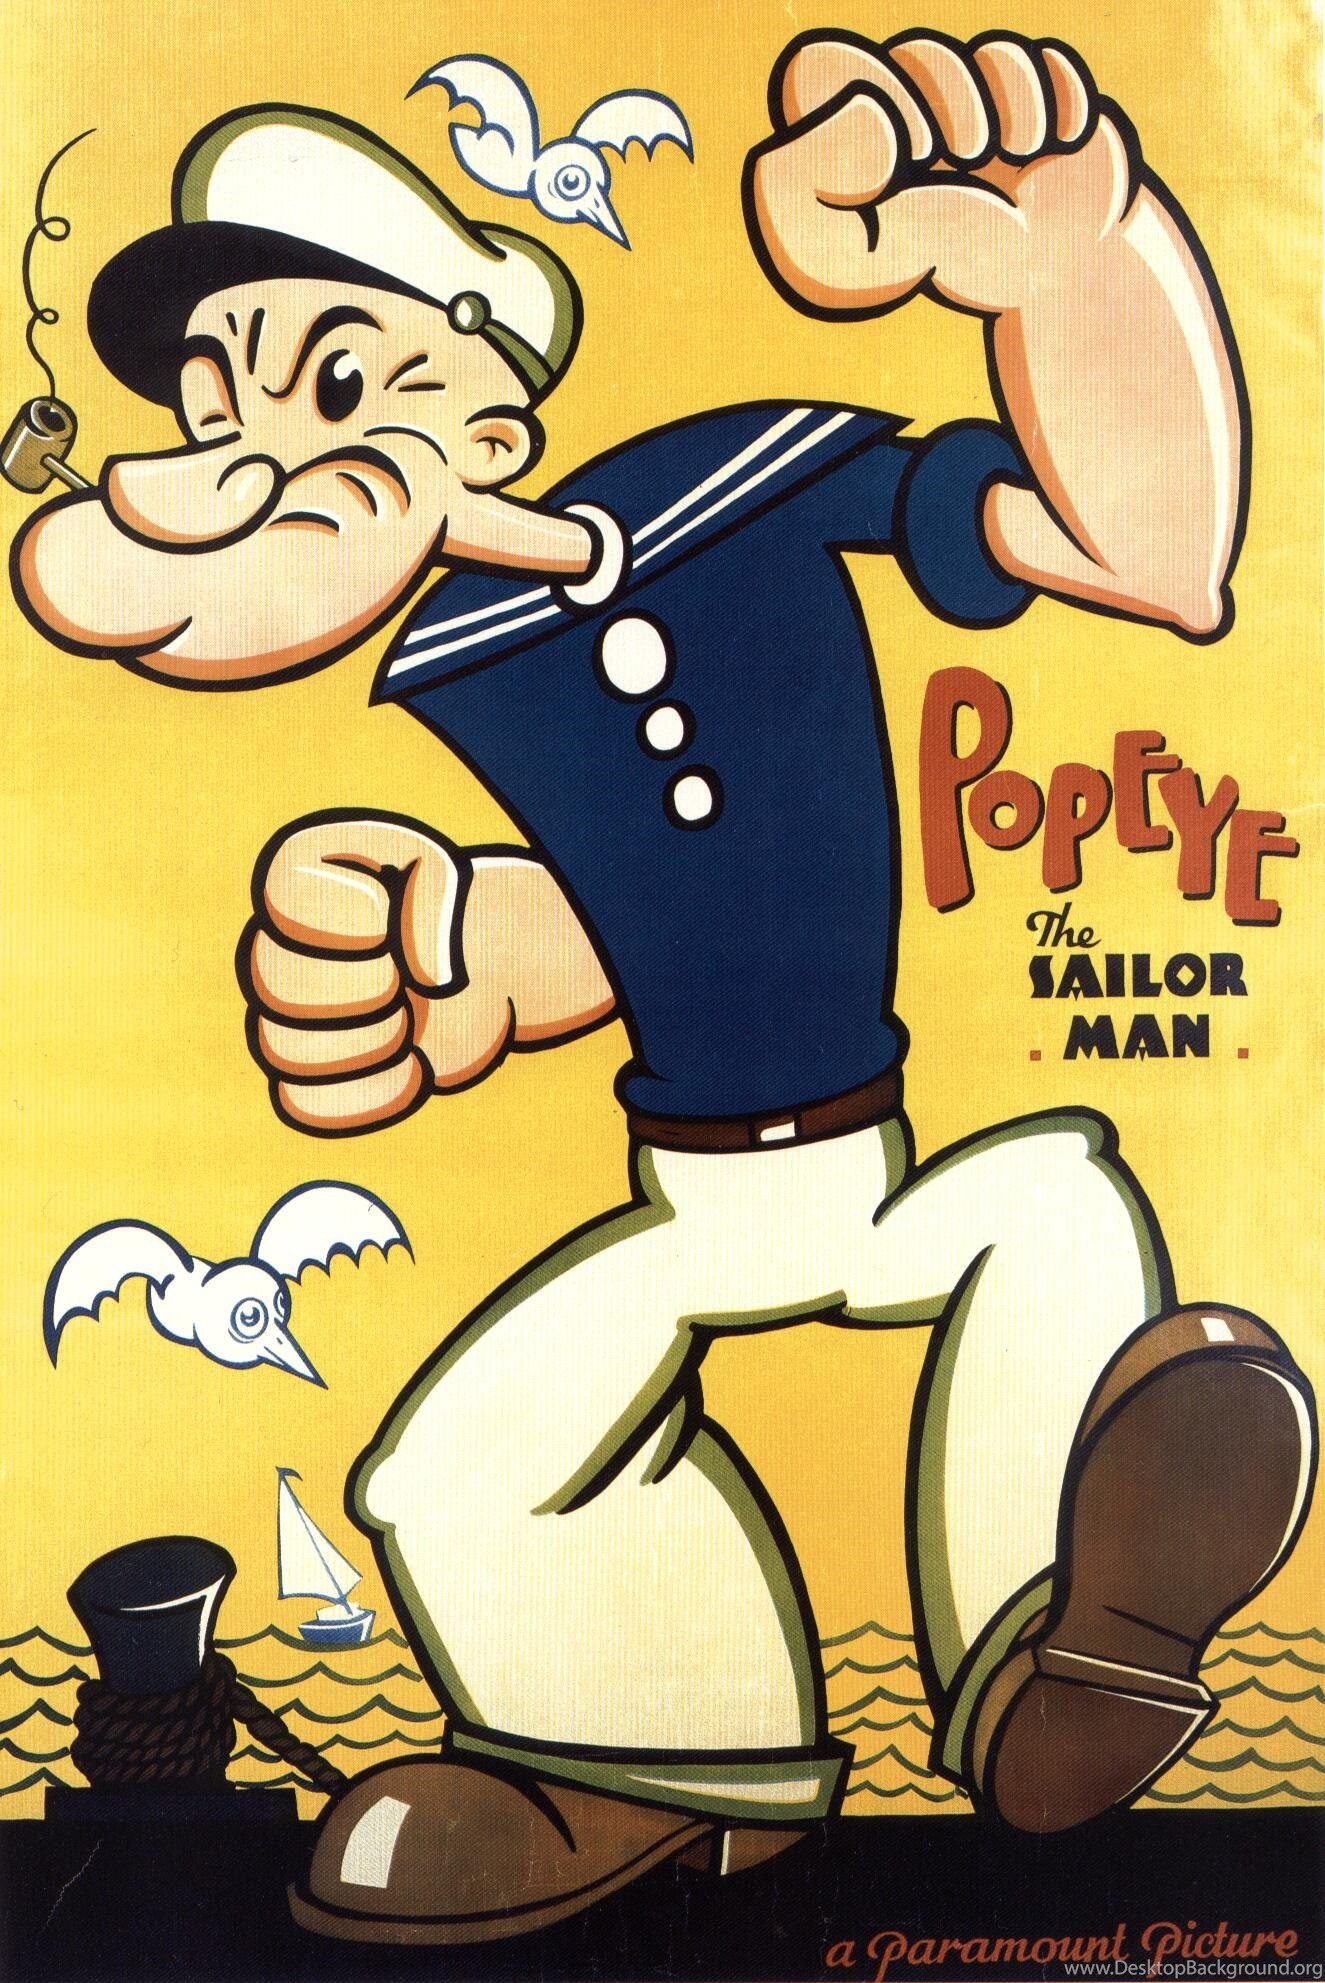 Popeye The Sailor Man Hd Image Wallpapers For Android Cartoons